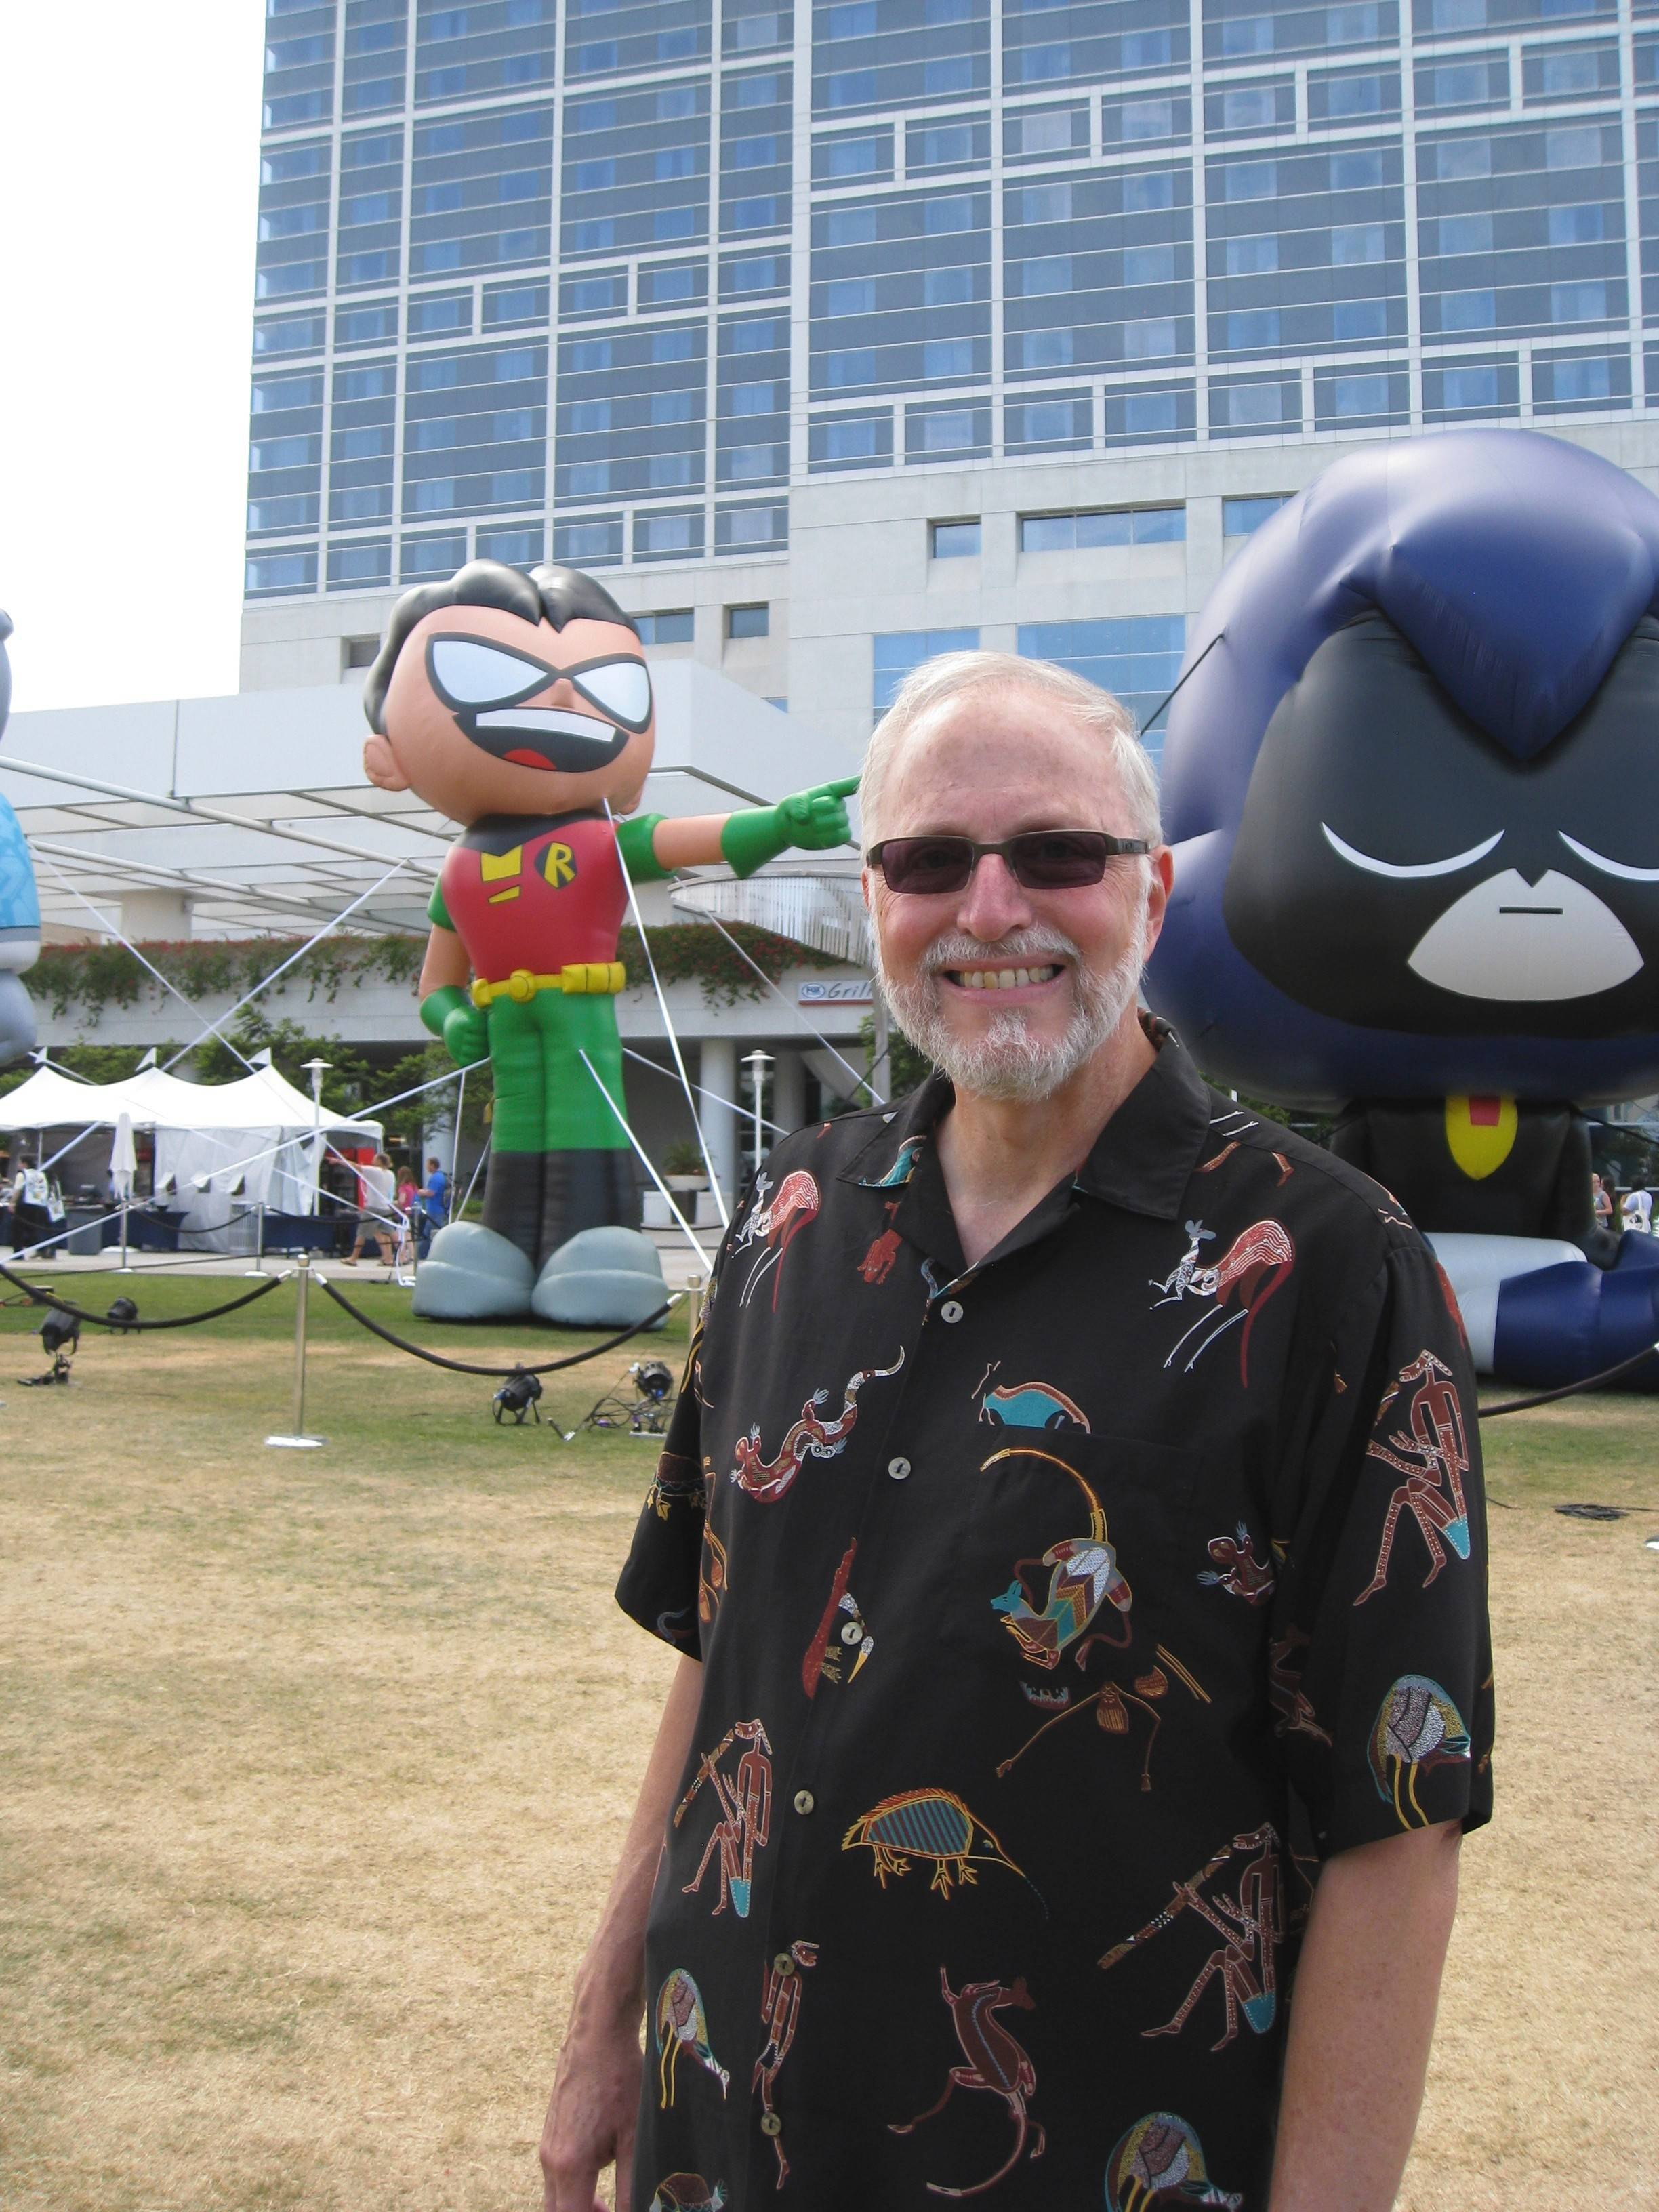 Marv Wolfman, a veteran comic-book writer who has worked on the biggest characters from Marvel and DC Comics, will be among the creators talking to fans at this weekend's Chicago Comic Con in Rosemont.